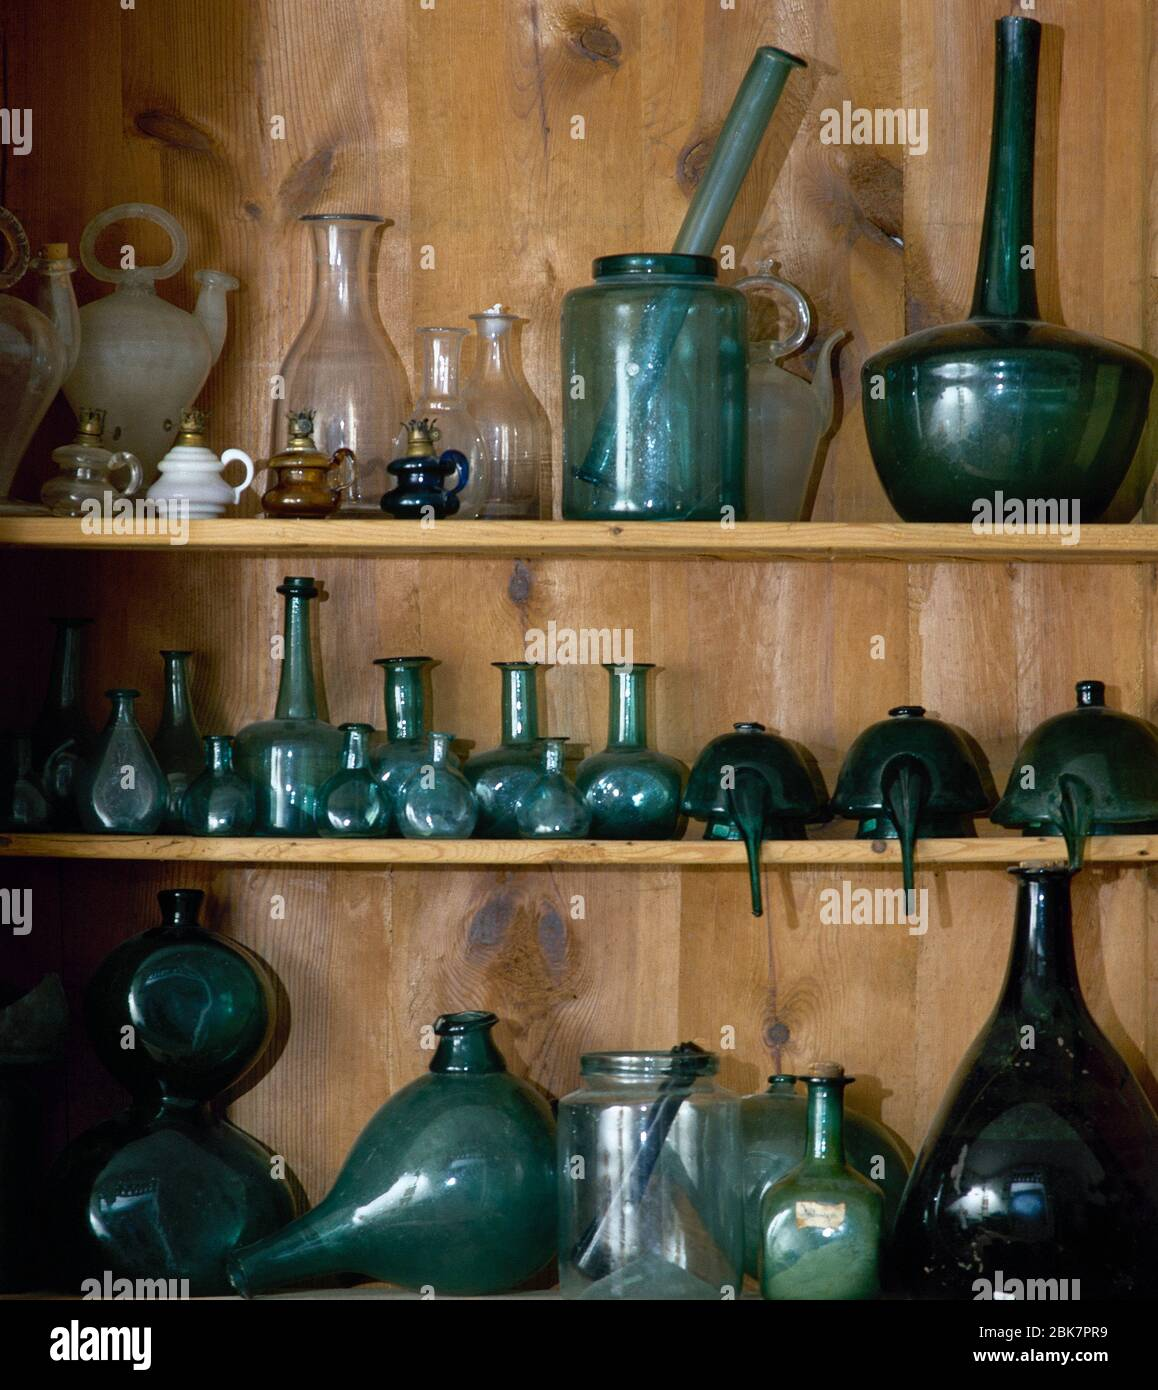 Apothecary (former pharmacy, 16-18th centuries). Glass containers. Royal Monastery of Santa Maria de Vallbona. Lleida province, Catalonia, Spain. Stock Photo